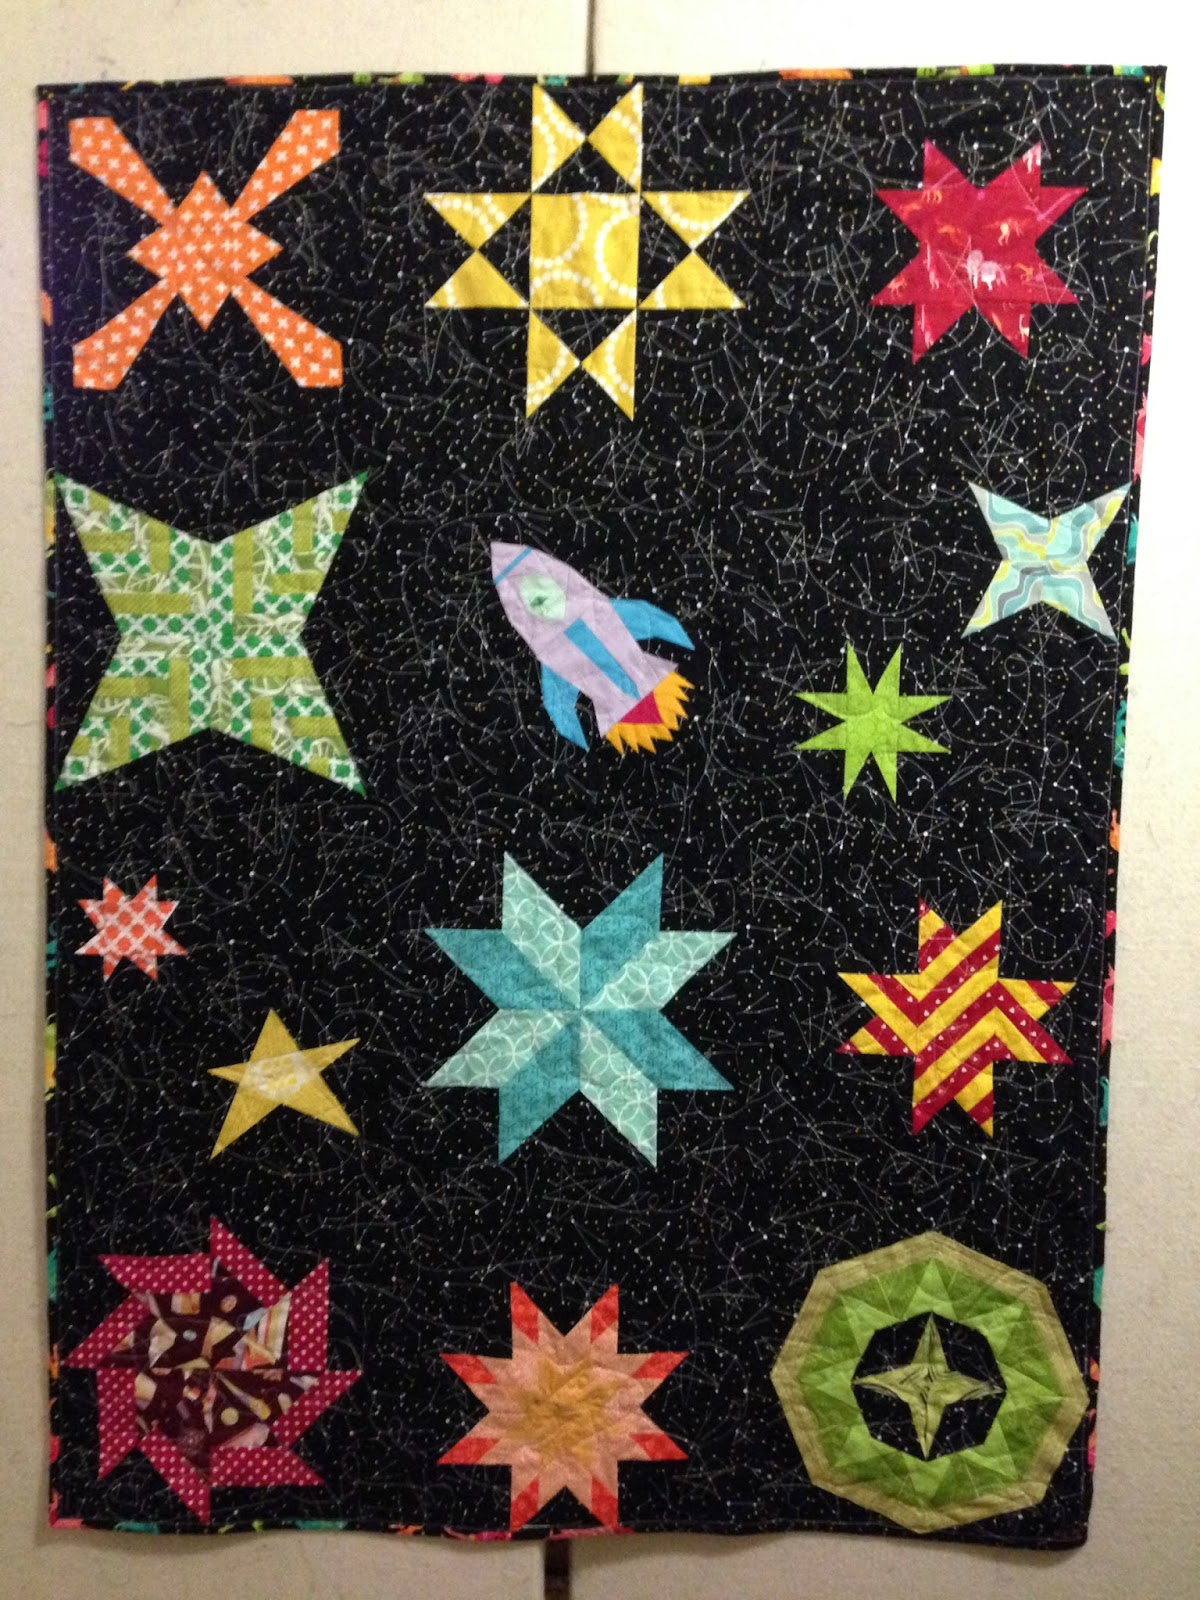 Life sew crafty space baby quilt for Spaceship quilt